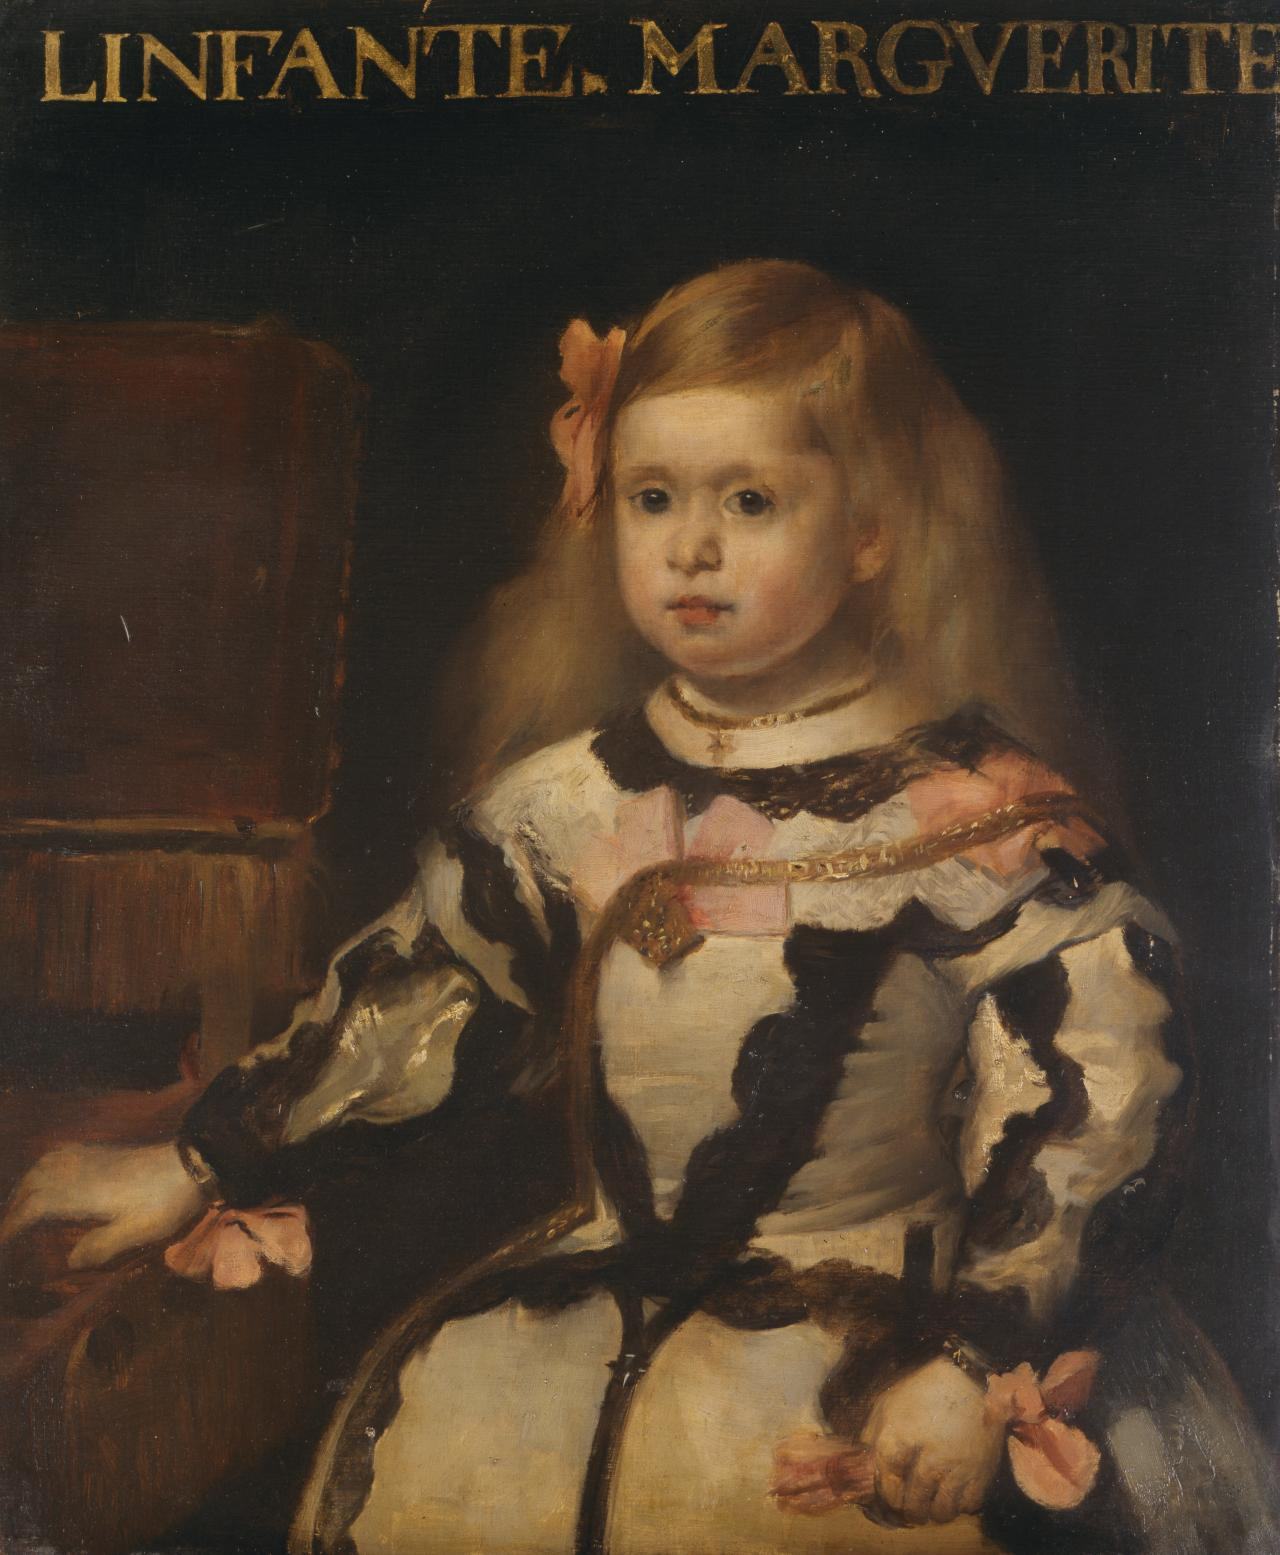 The Infanta Marie Marguerite